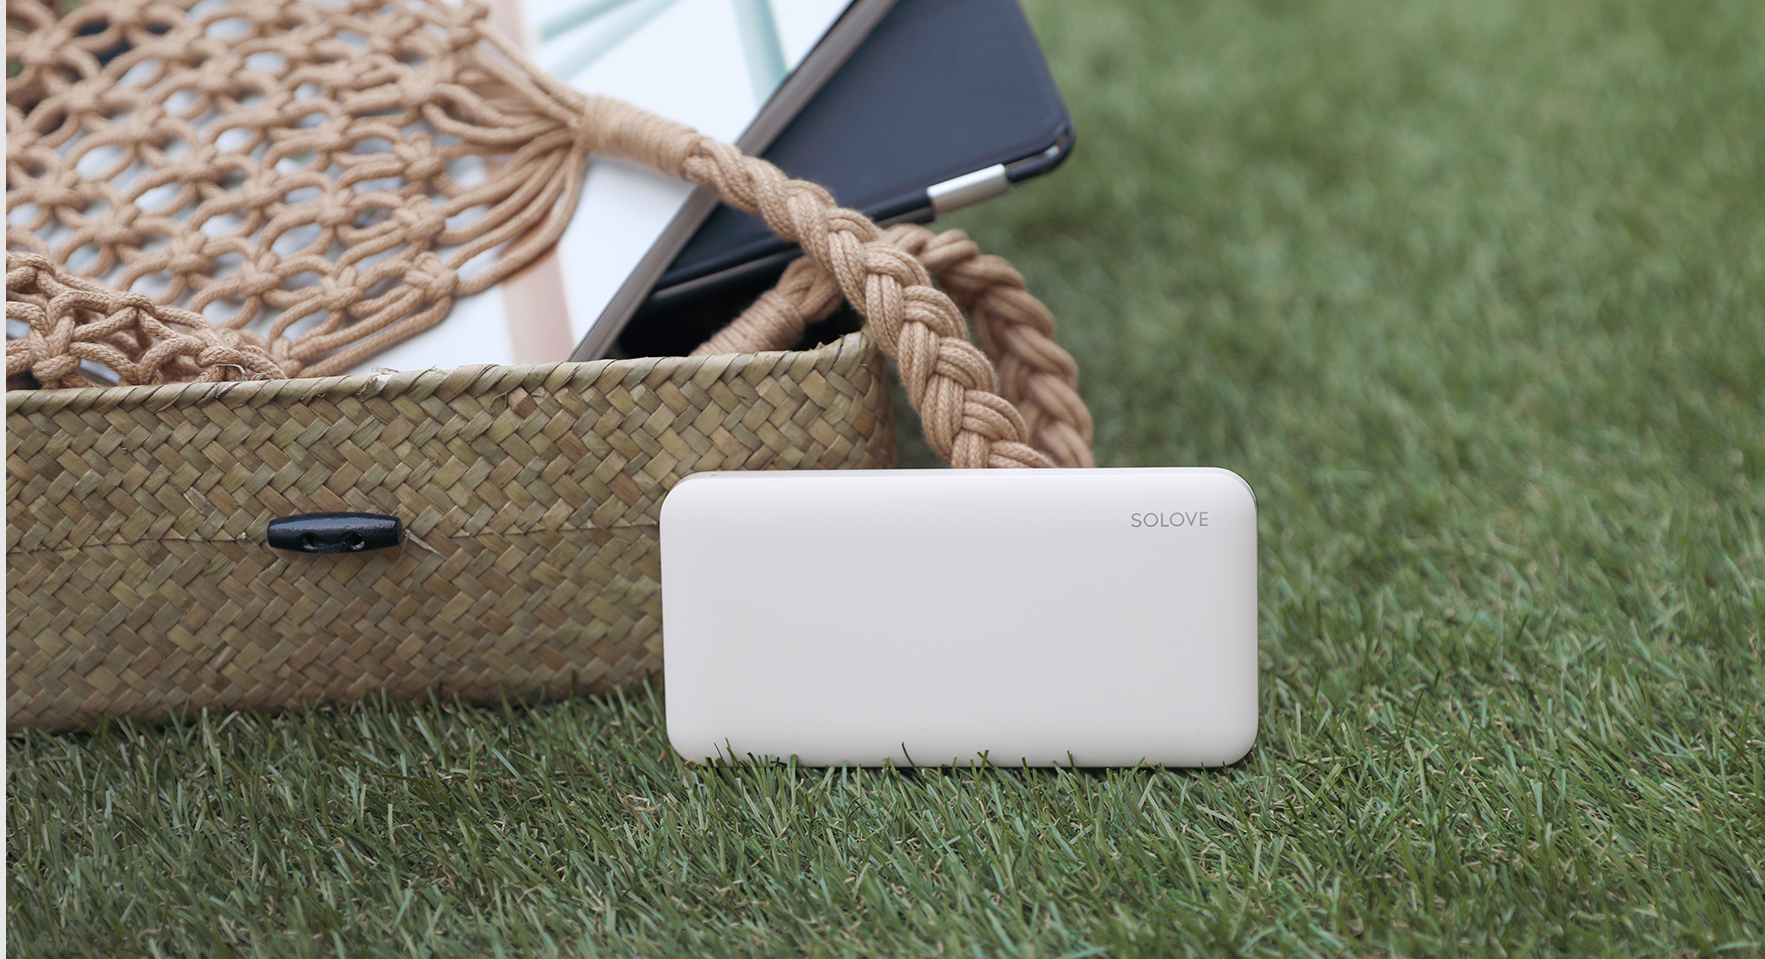 001M+-Power Bank images